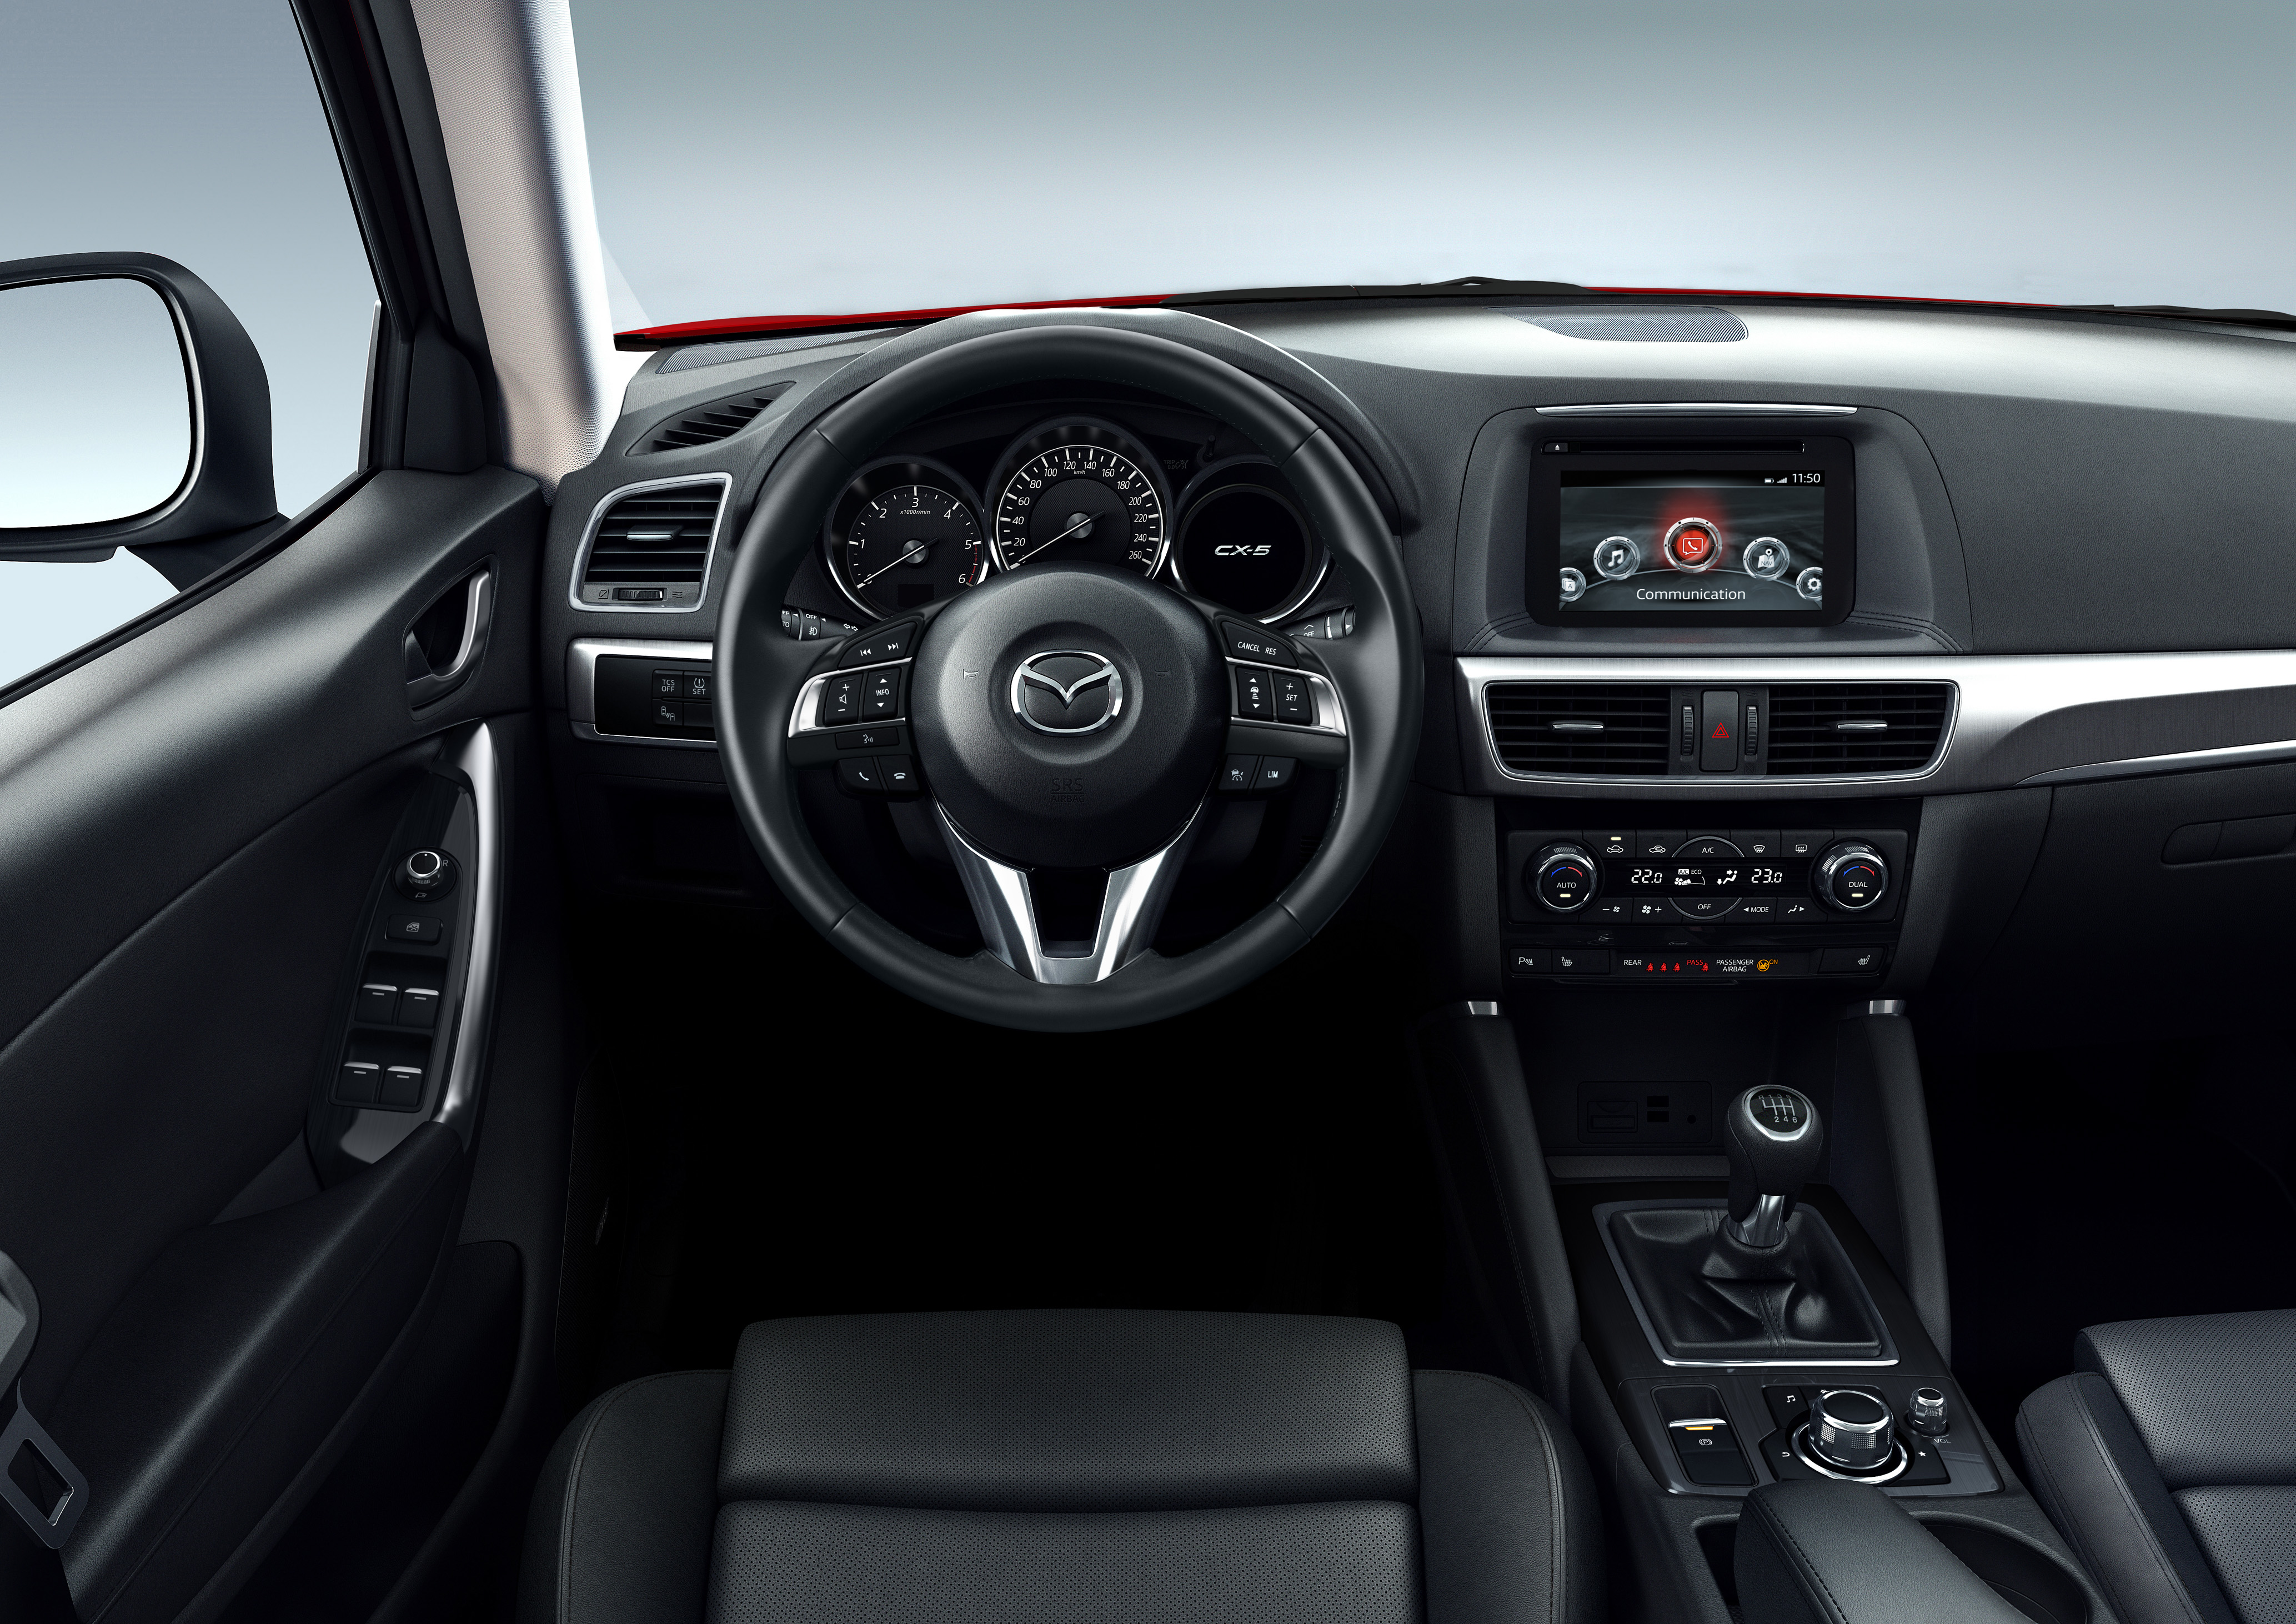 Mazda CX-5 facelift appears at LA with minor upgrades Image 289632